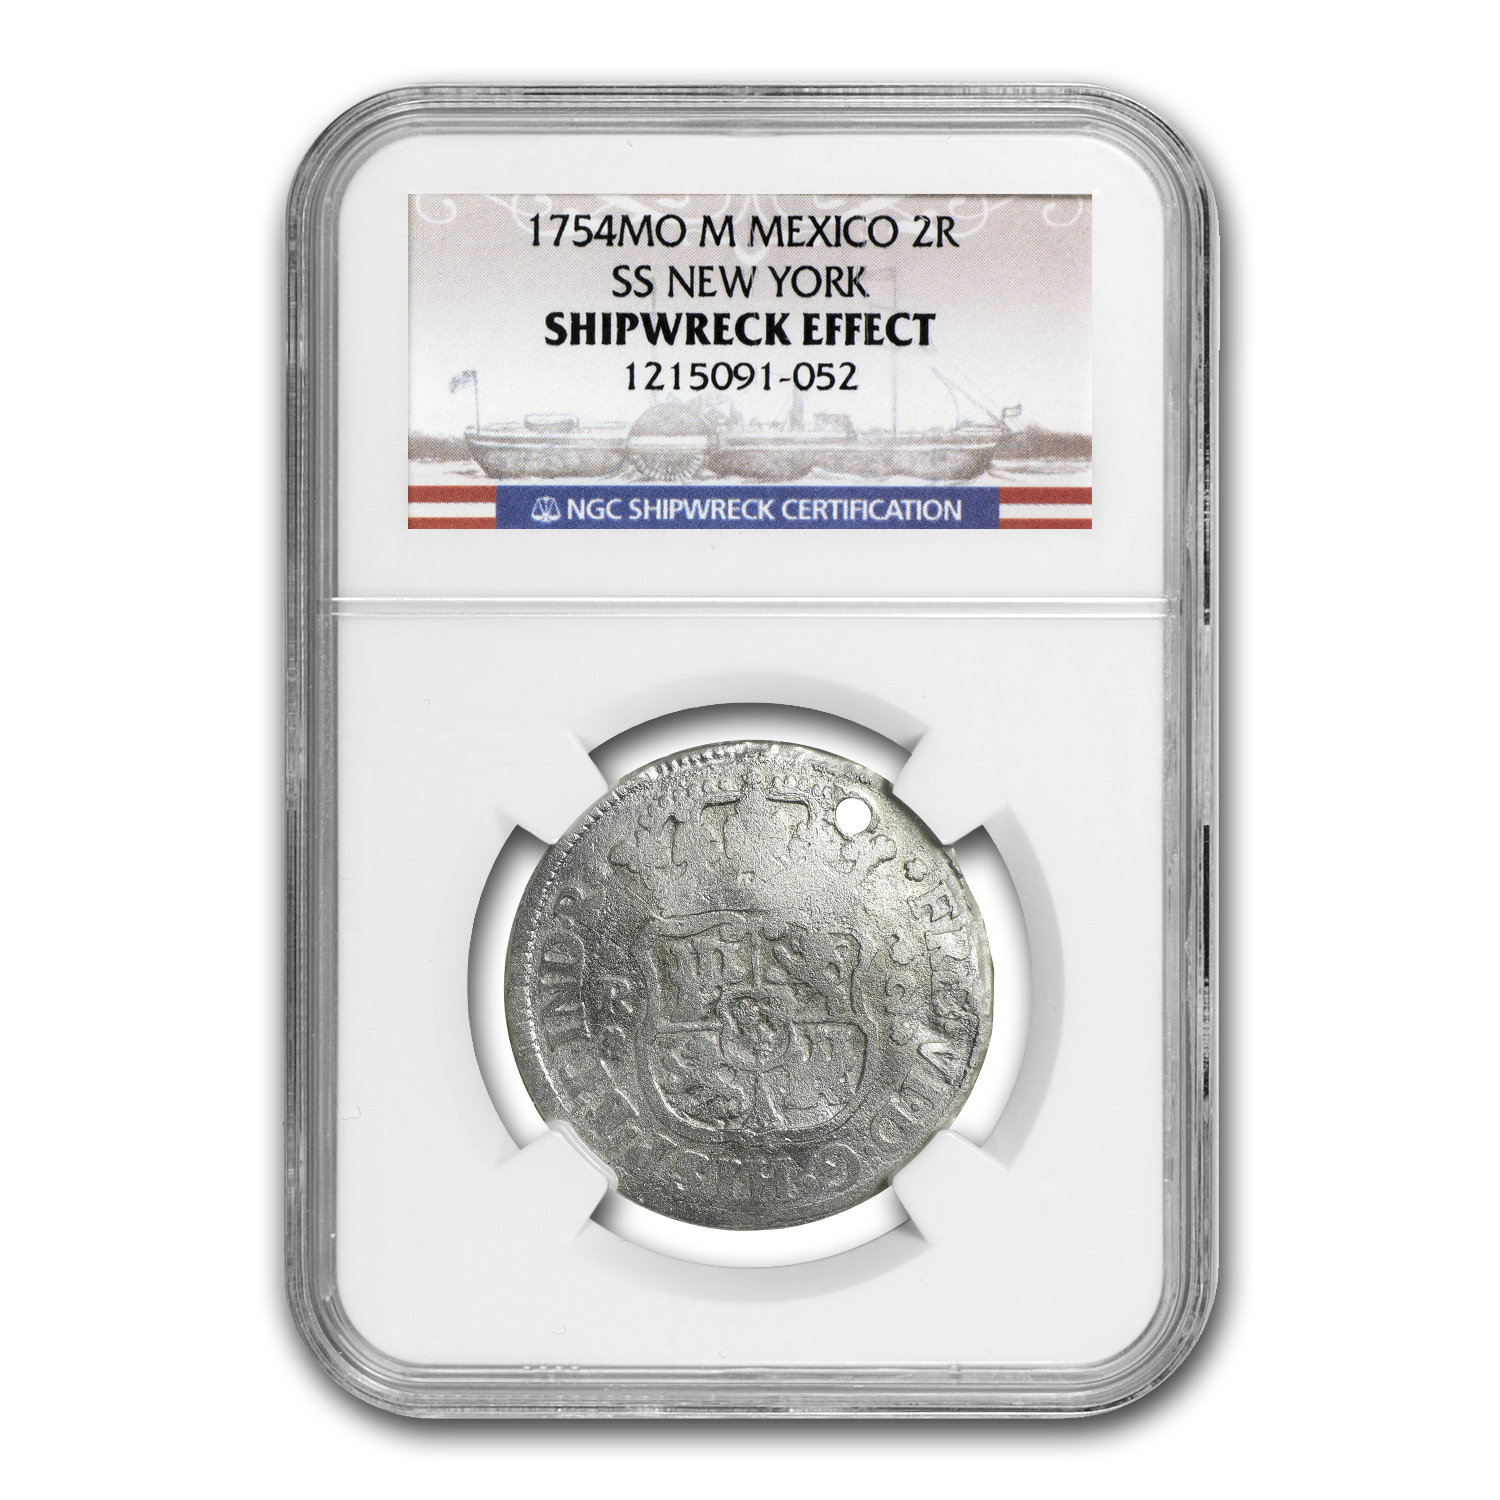 1754-Mo M Mexico 2R SS New York SHIPWRECK EFFECT Coin NGC